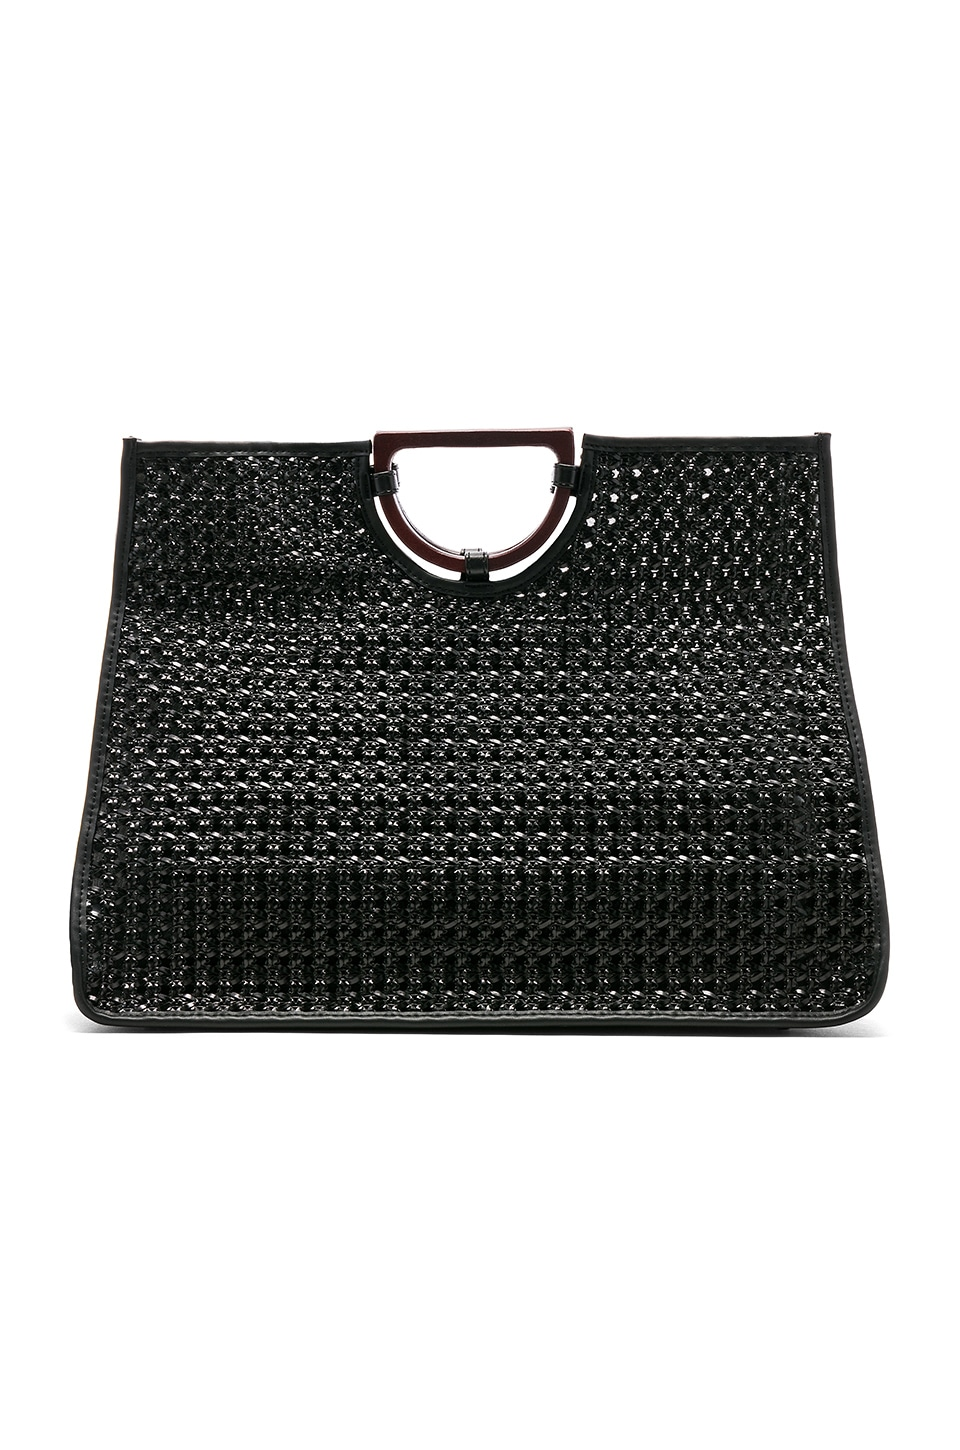 House of Harlow 1960 x REVOLVE Tilly Tote in Black